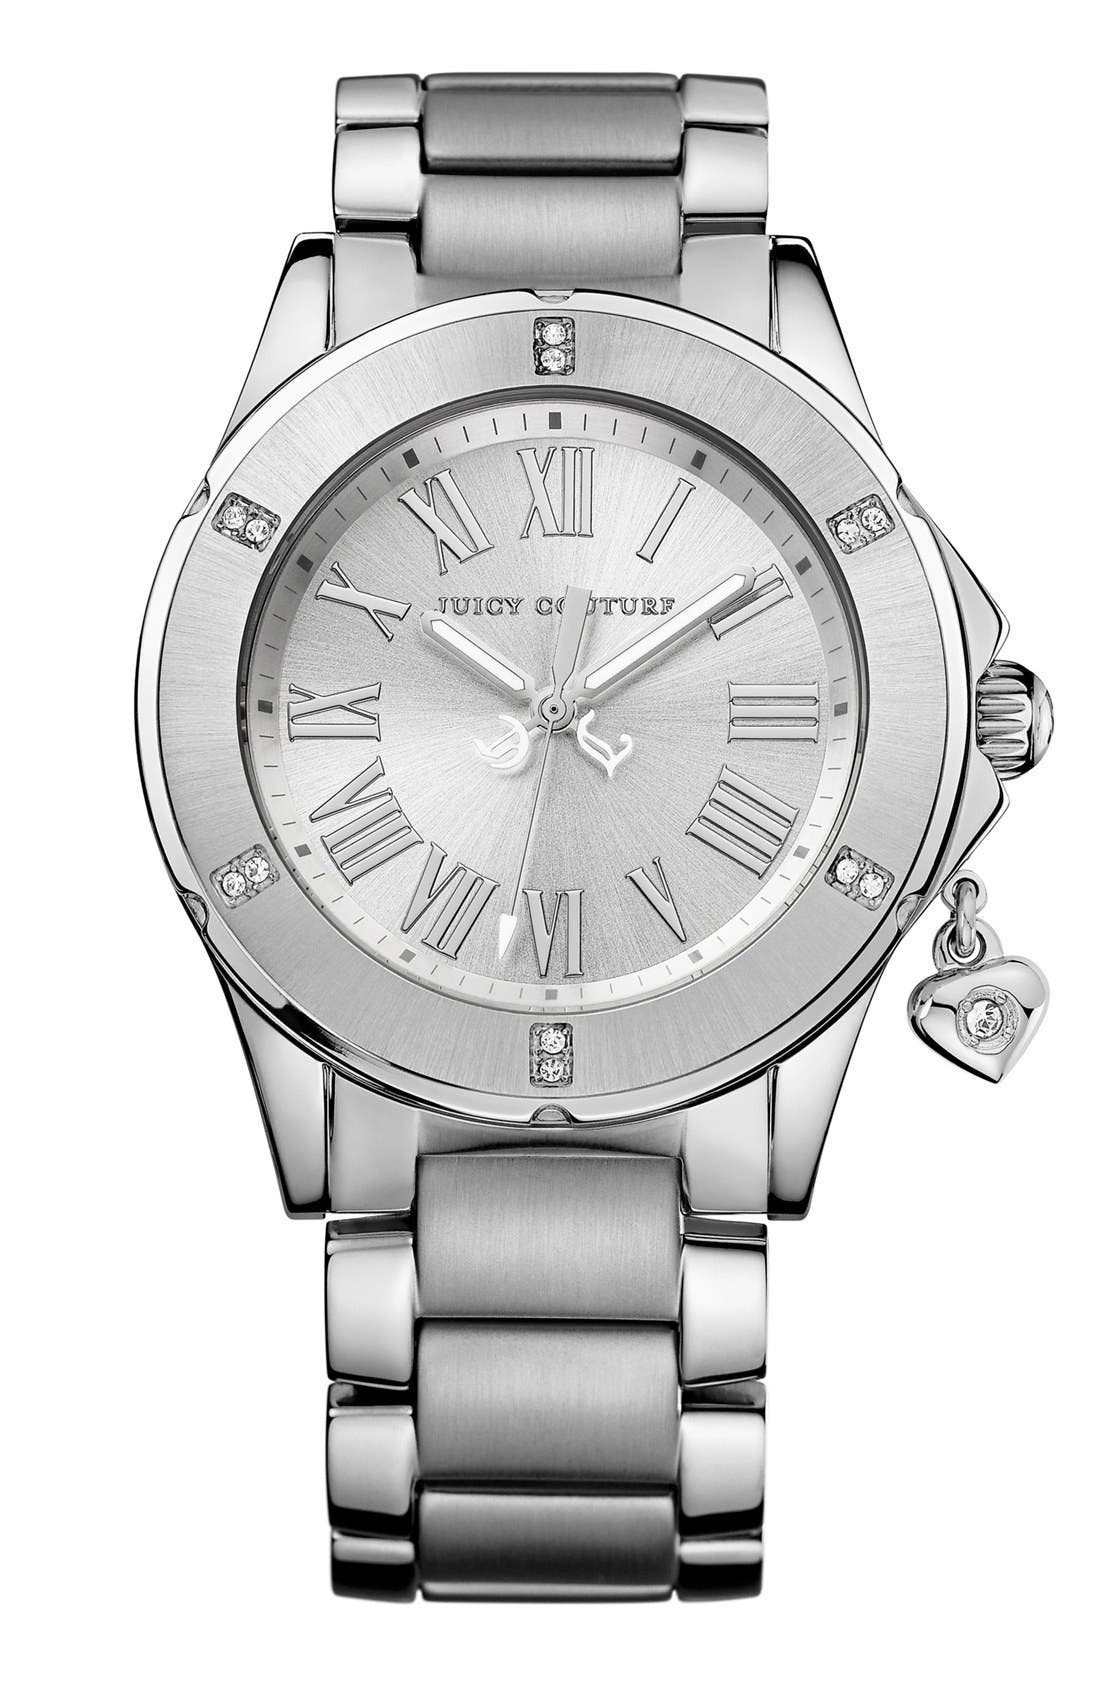 Alternate Image 1 Selected - Juicy Couture 'Rich Girl' Round Dial Bracelet Watch, 41mm